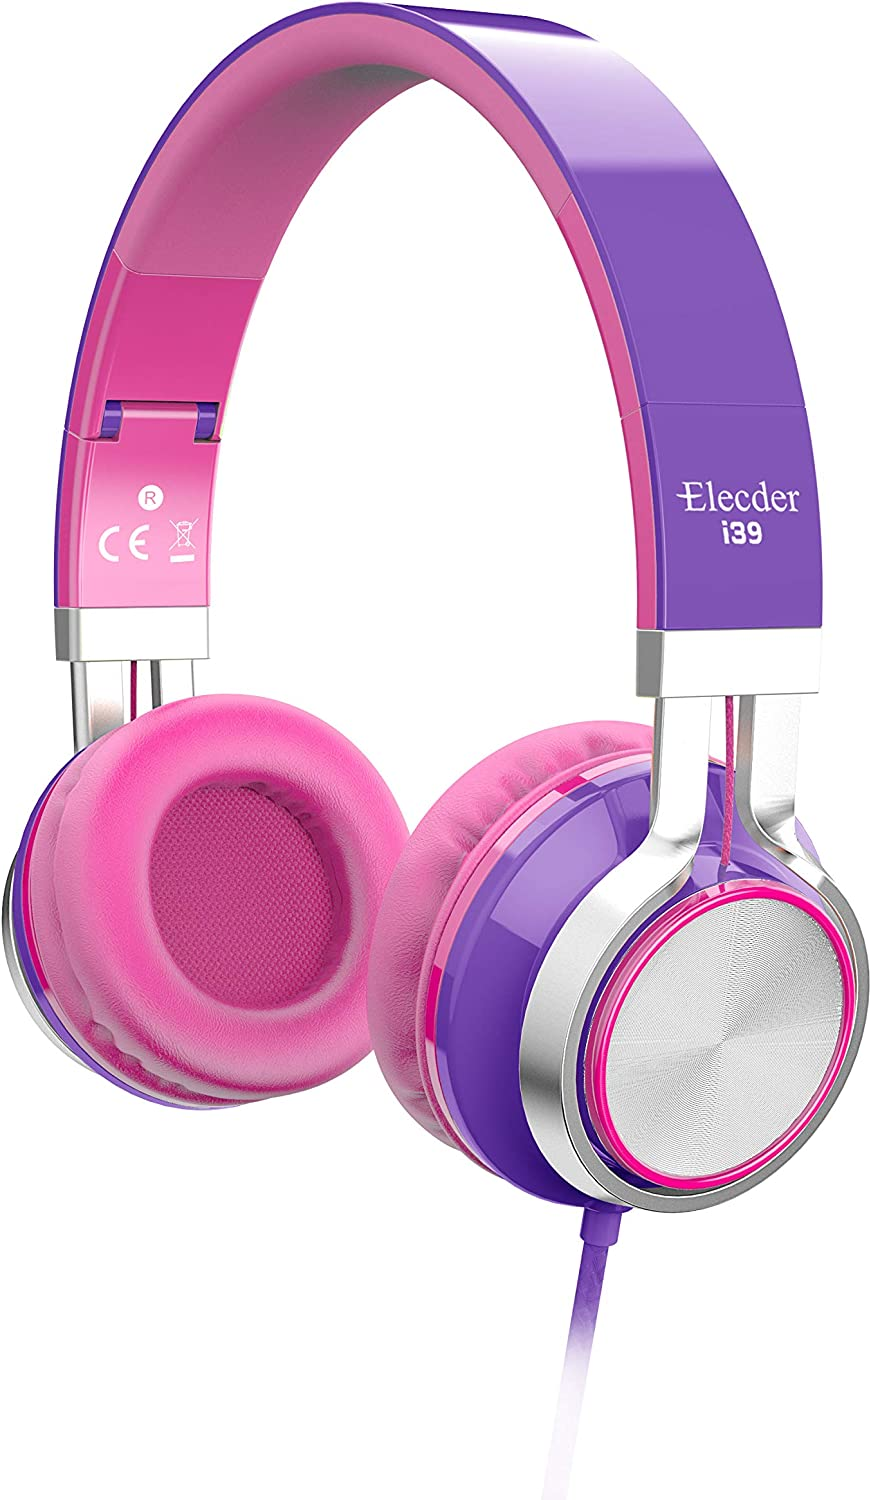 Elecder i39 Headphones with Microphone Foldable Lightweight Adjustable On Ear Headsets with 3.5mm Jack for iPad Cellphones Computer MP3 4 Kindle Airplane School Purple Pink